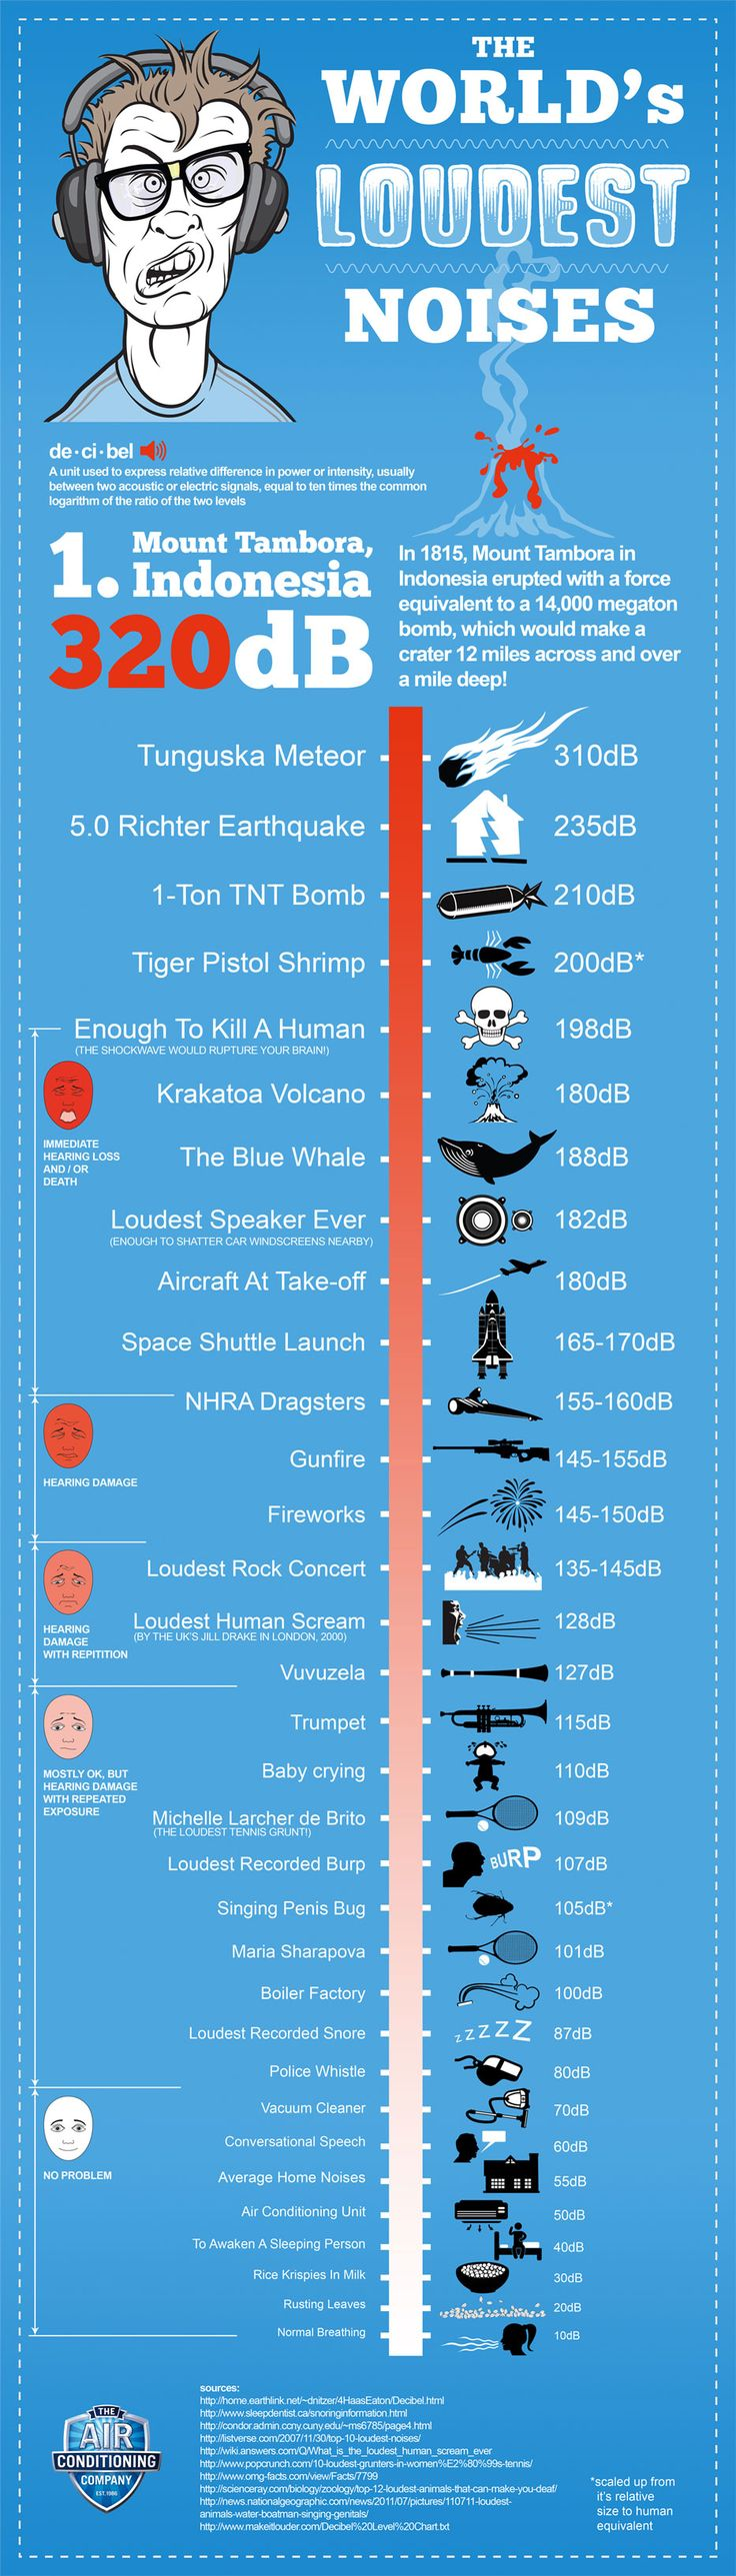 The world's loudest noises [interactive infographic]